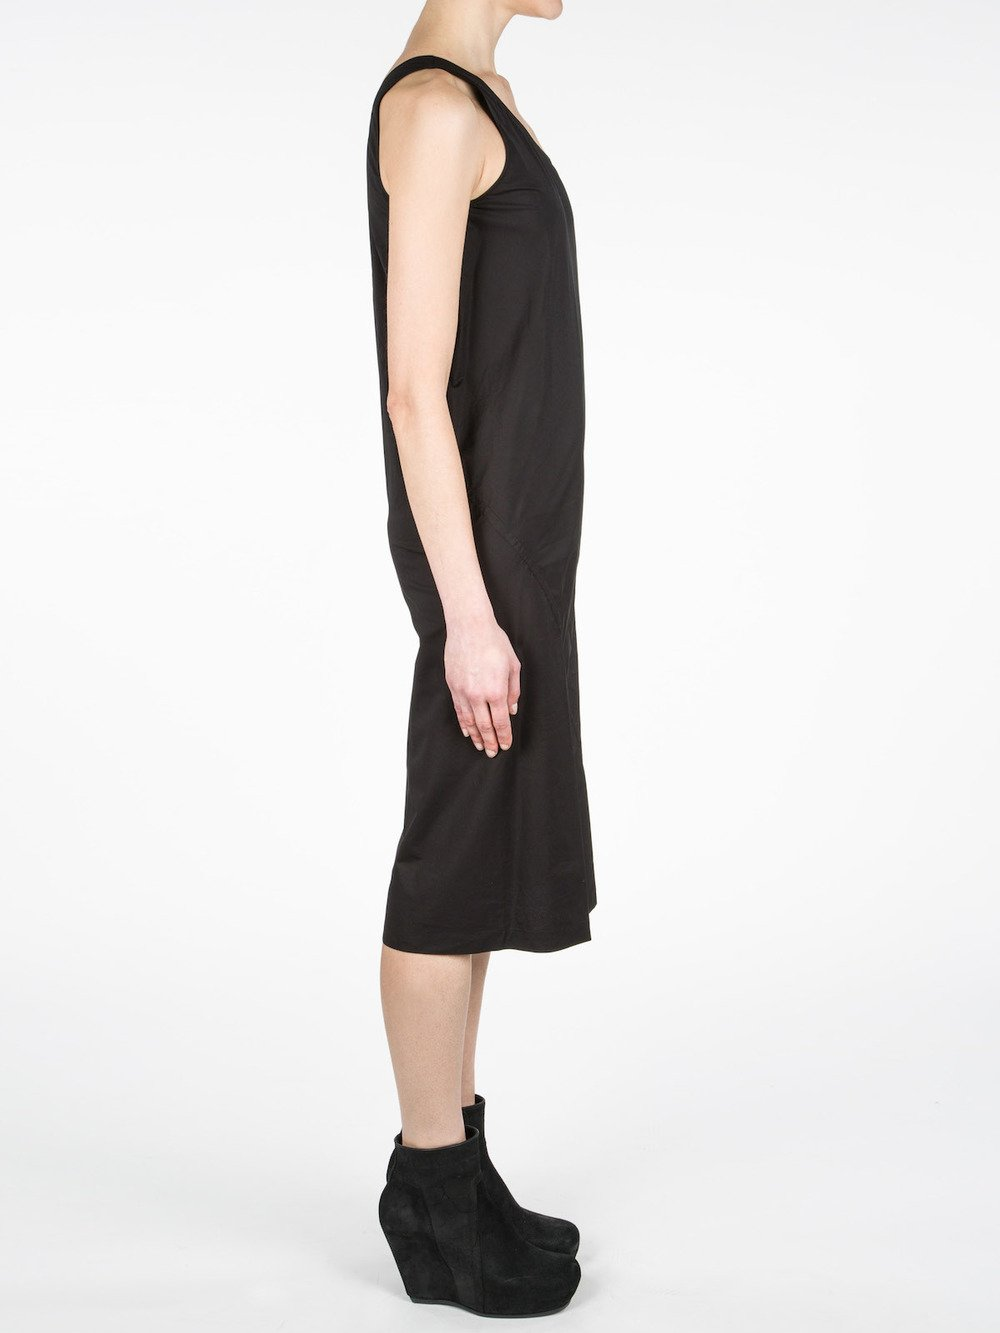 RICK OWENS - DRESS